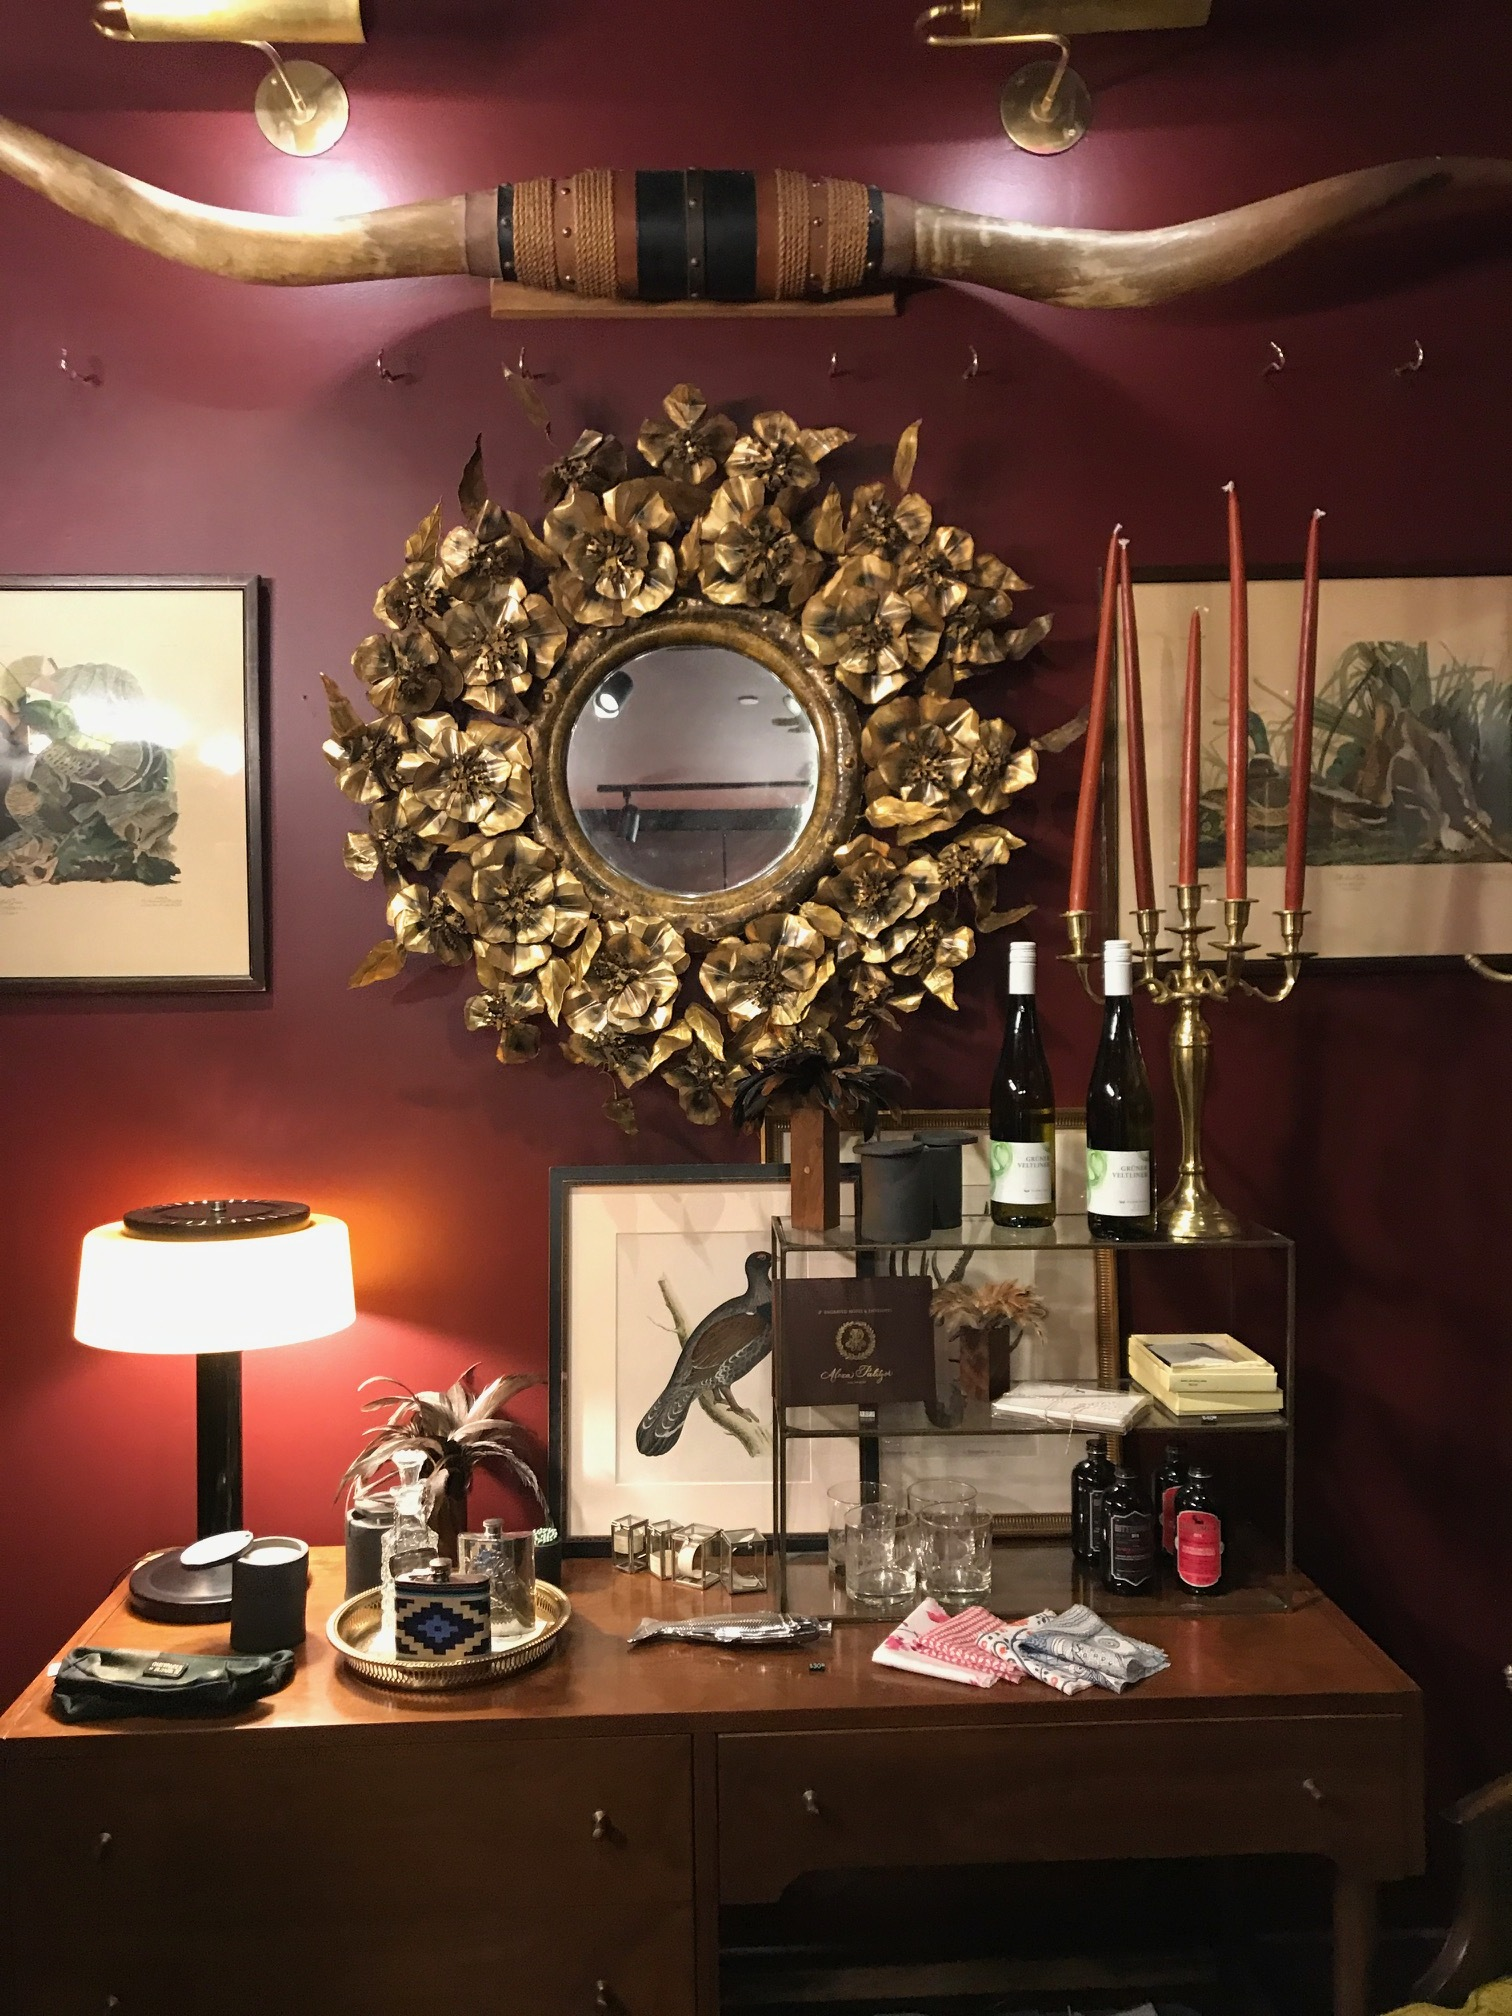 Garden & Gun magazine has a boutique in the lobby with amazing curated goods.